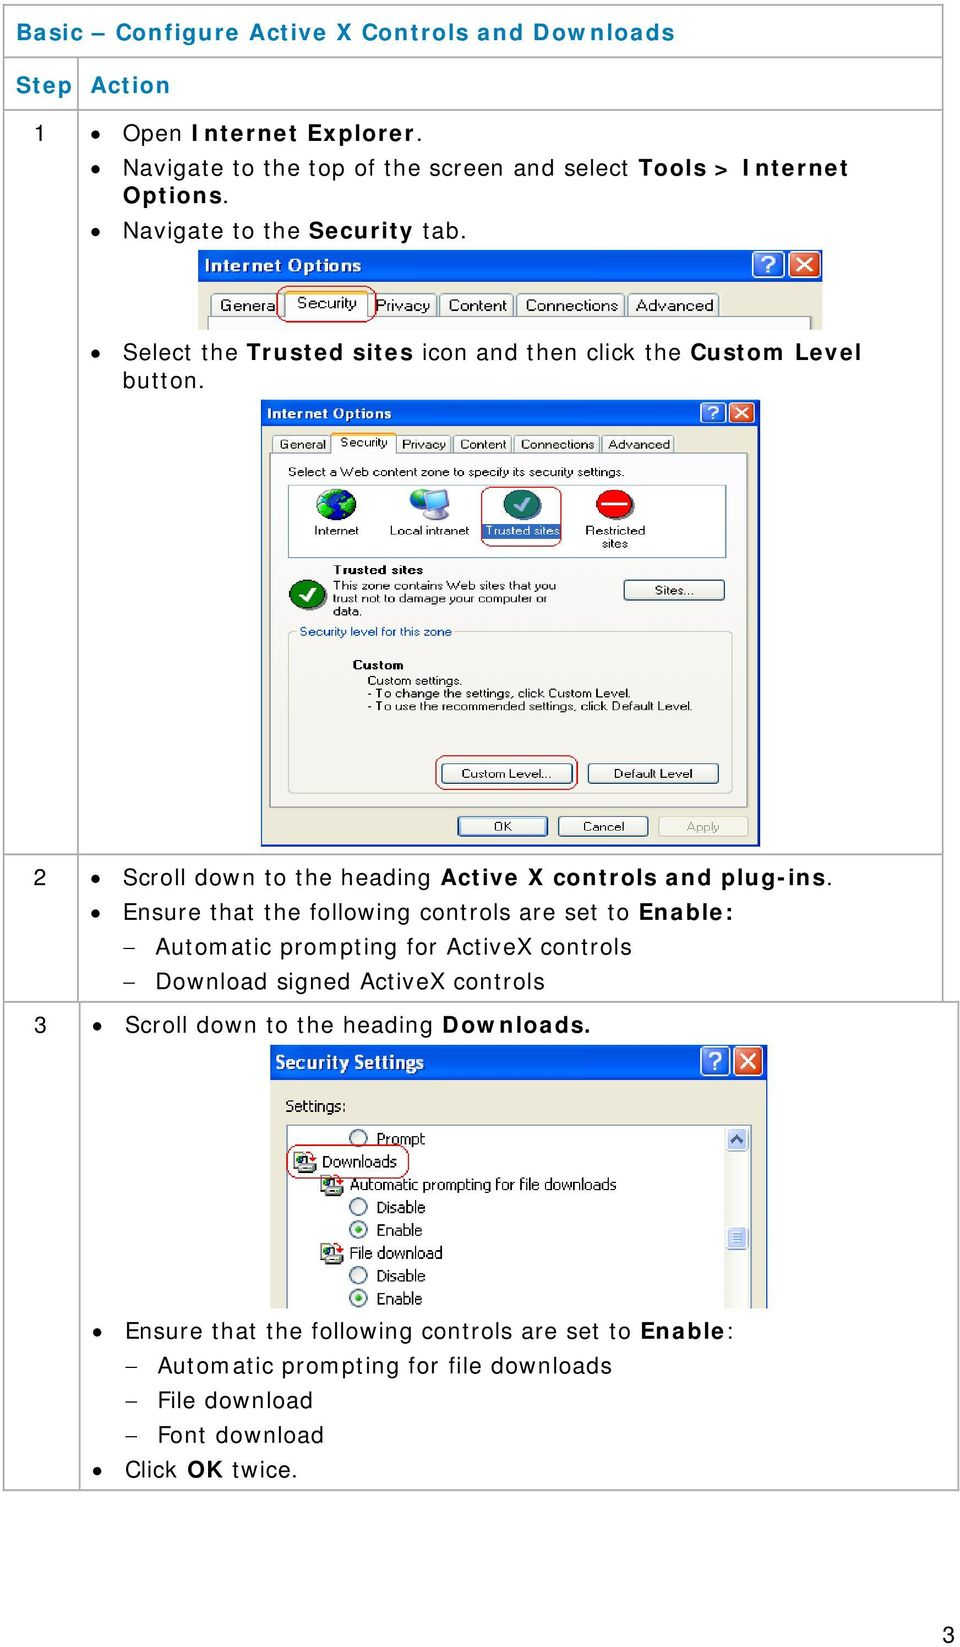 2 Scroll down to the heading Active X controls and plug-ins.